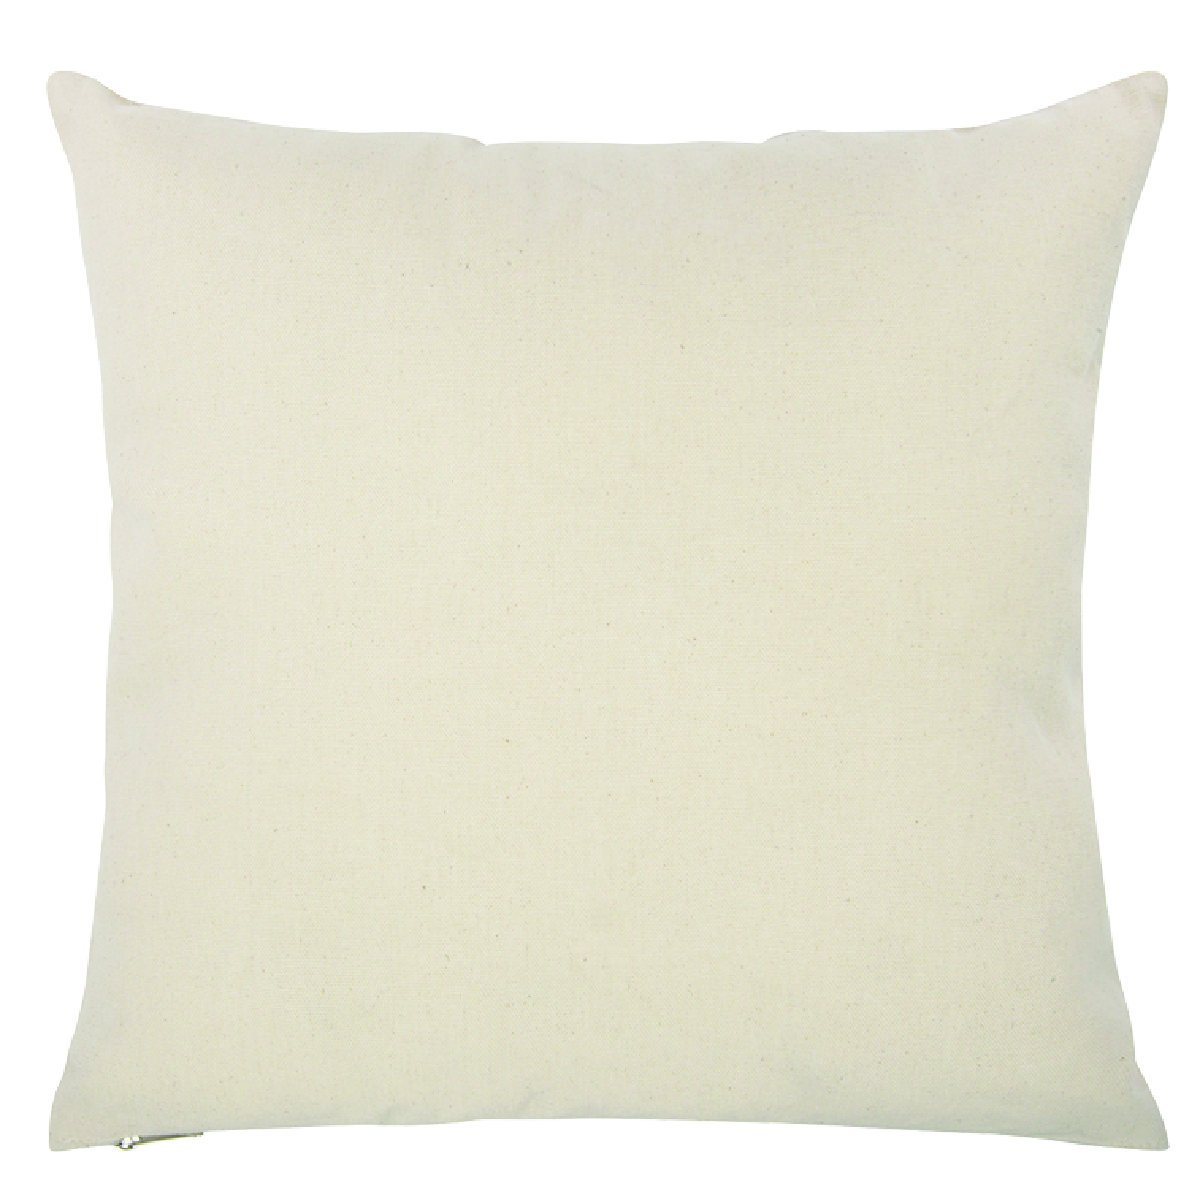 "Natural 16"" x 16"" Cotton Canvas Pillow Case"